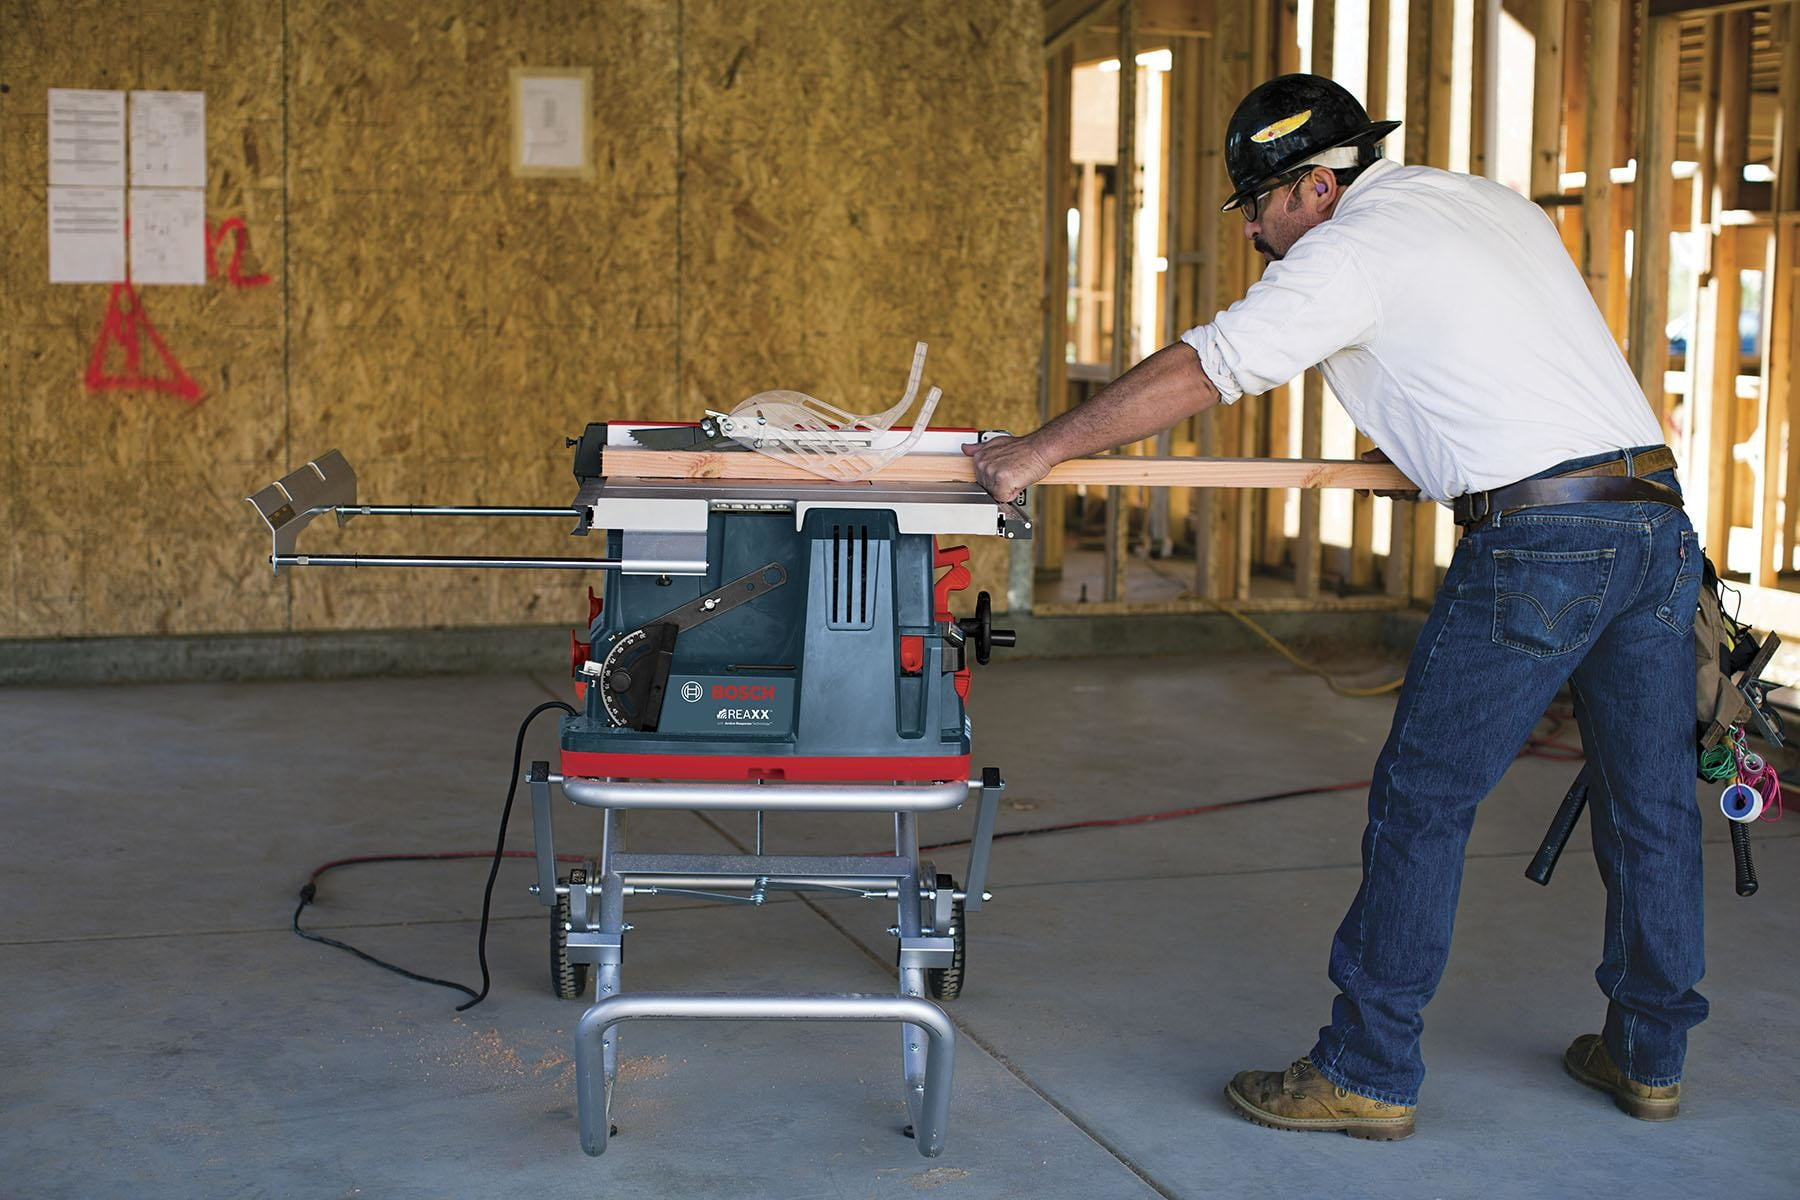 Bosch's new finger-sensing table saw uses small explosives to prevent cutting injuries